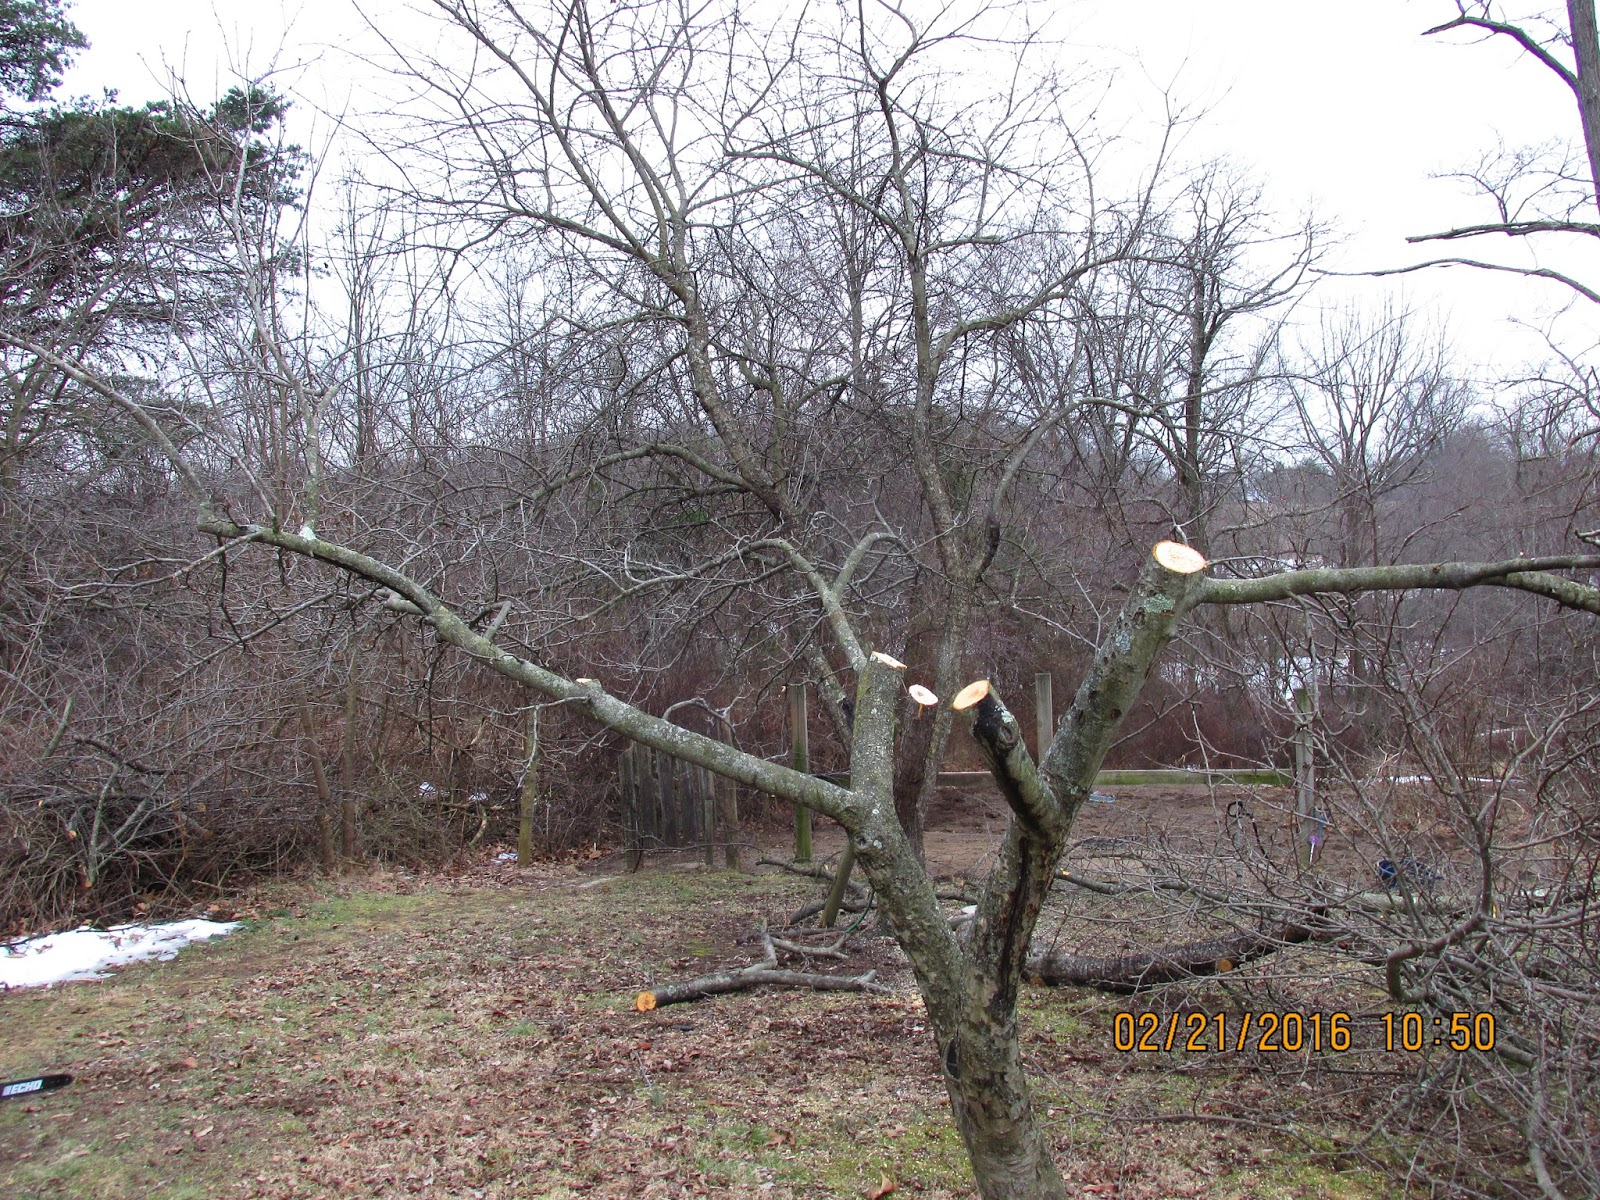 Allegheny mountain wanderings more pruning pics - Spring trimming orchard trees healthy ...